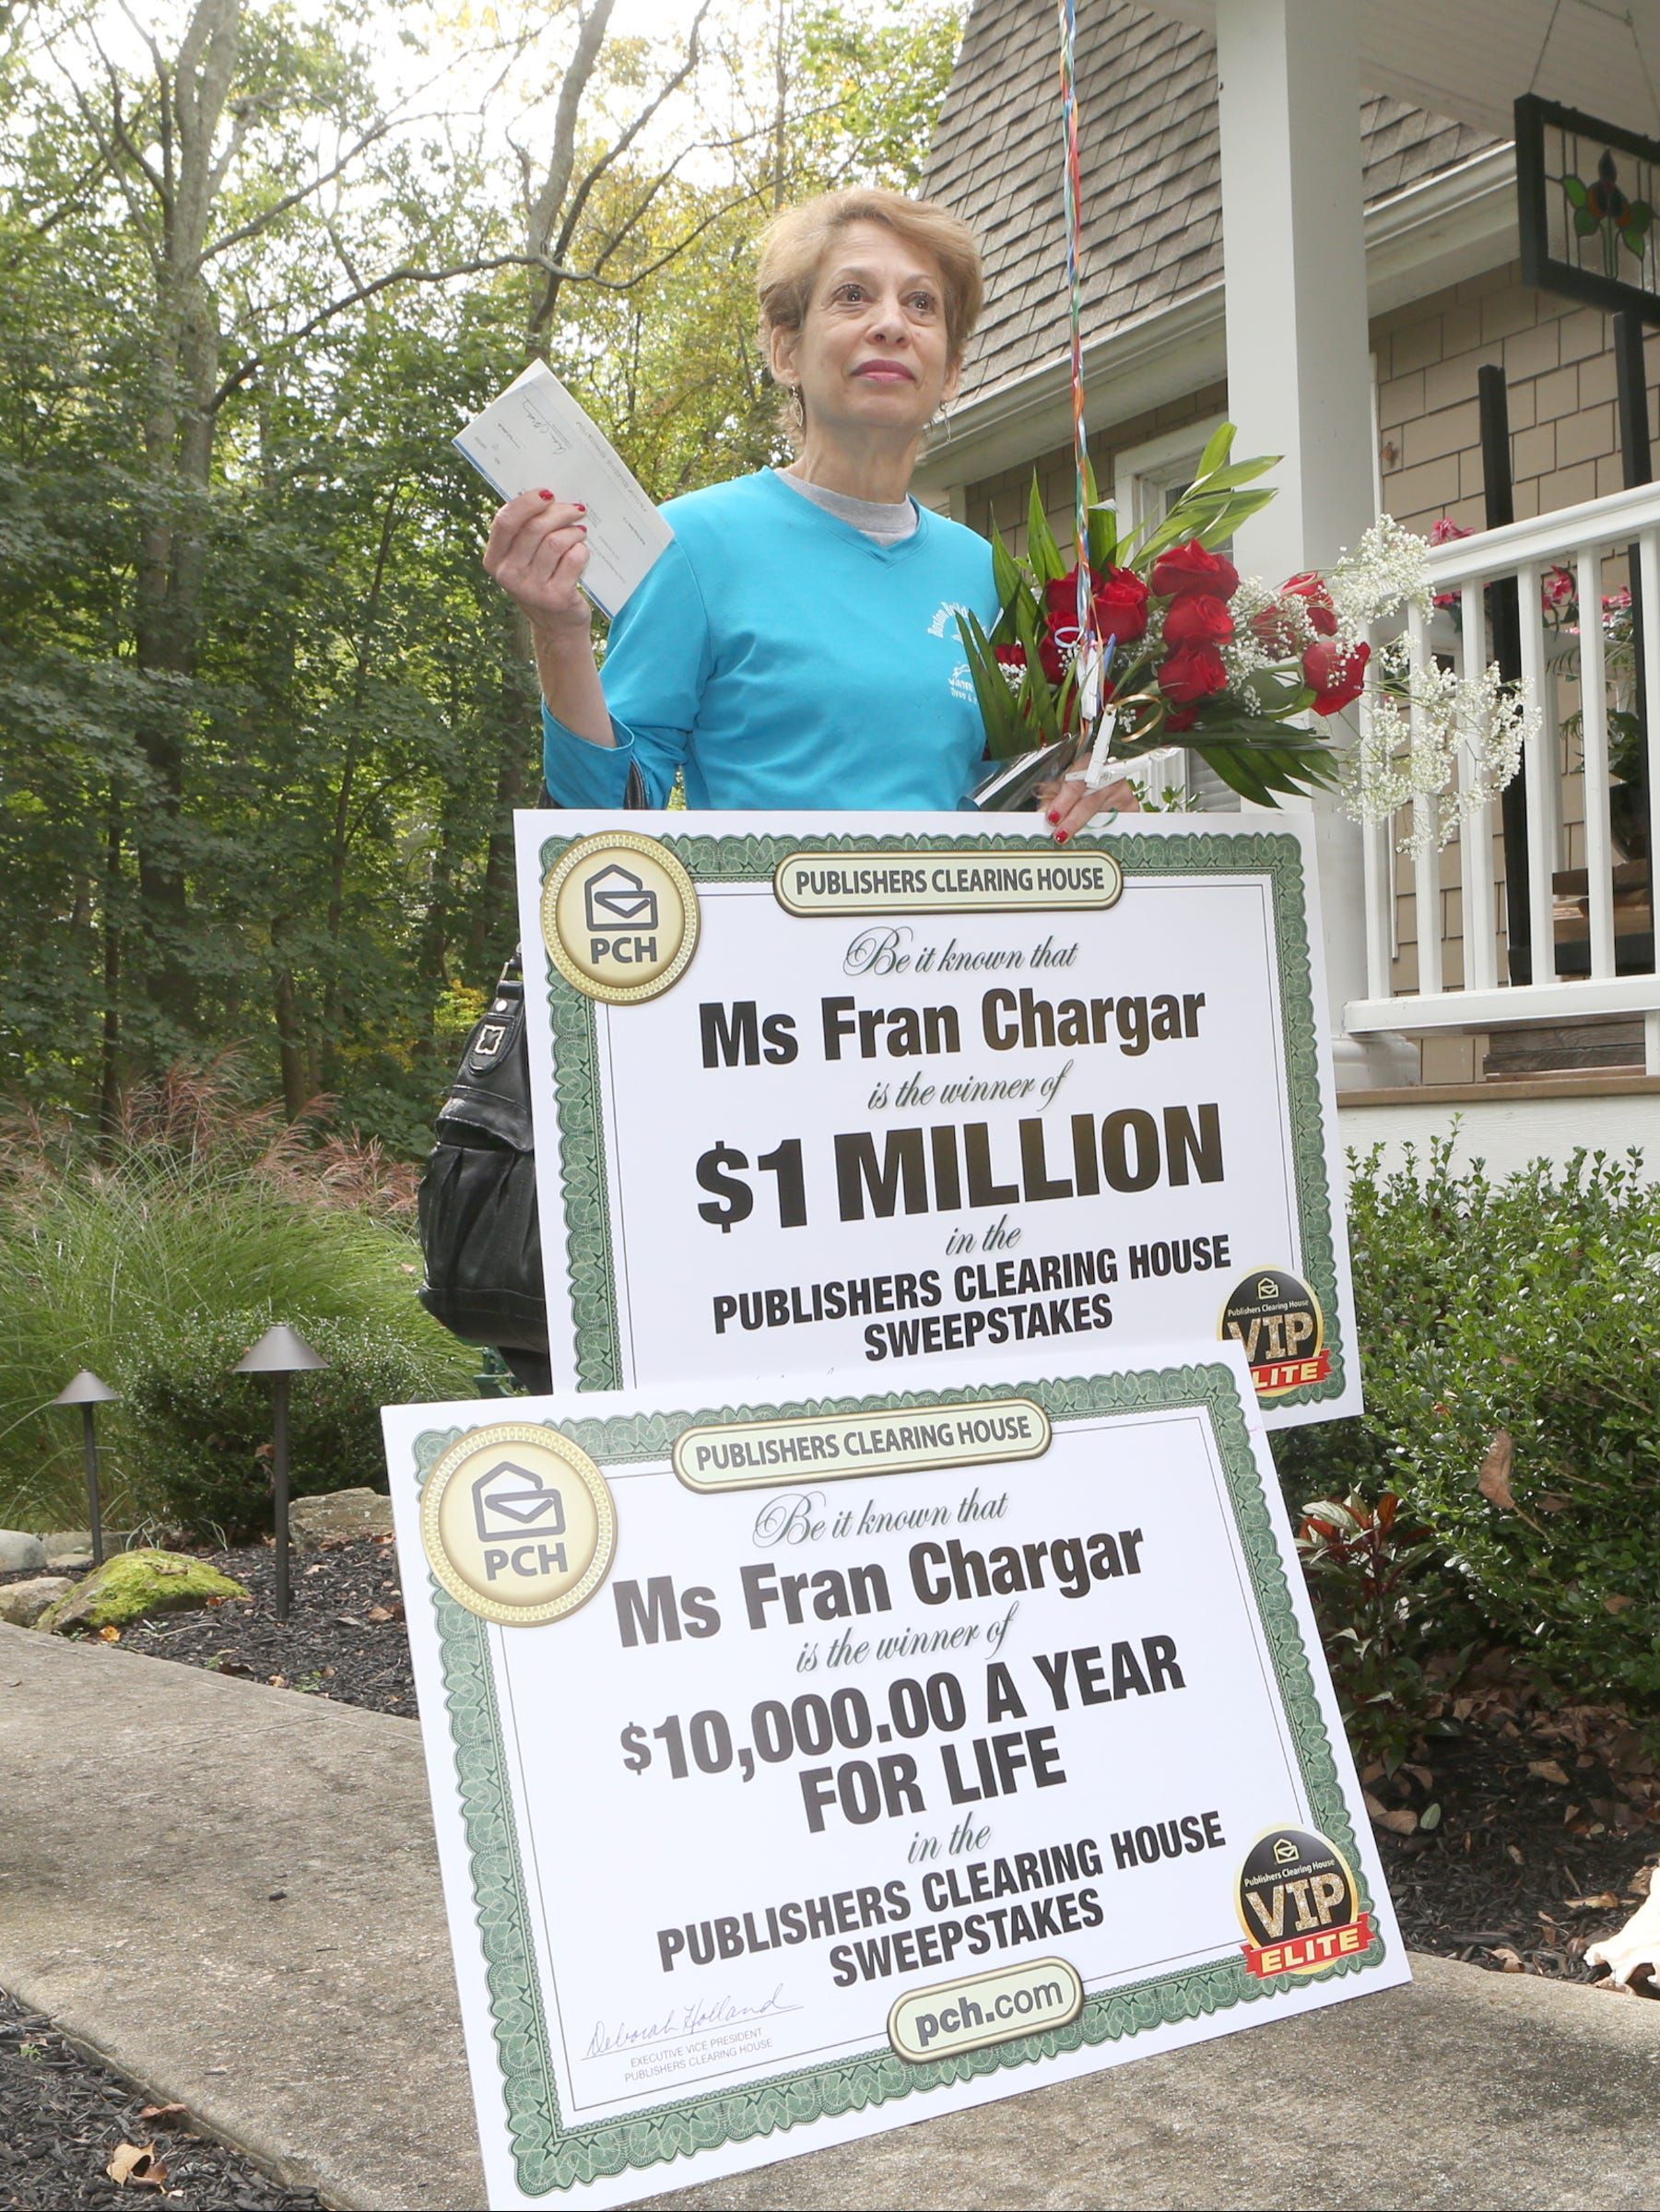 Publishers clearing house sweepstakes email promo